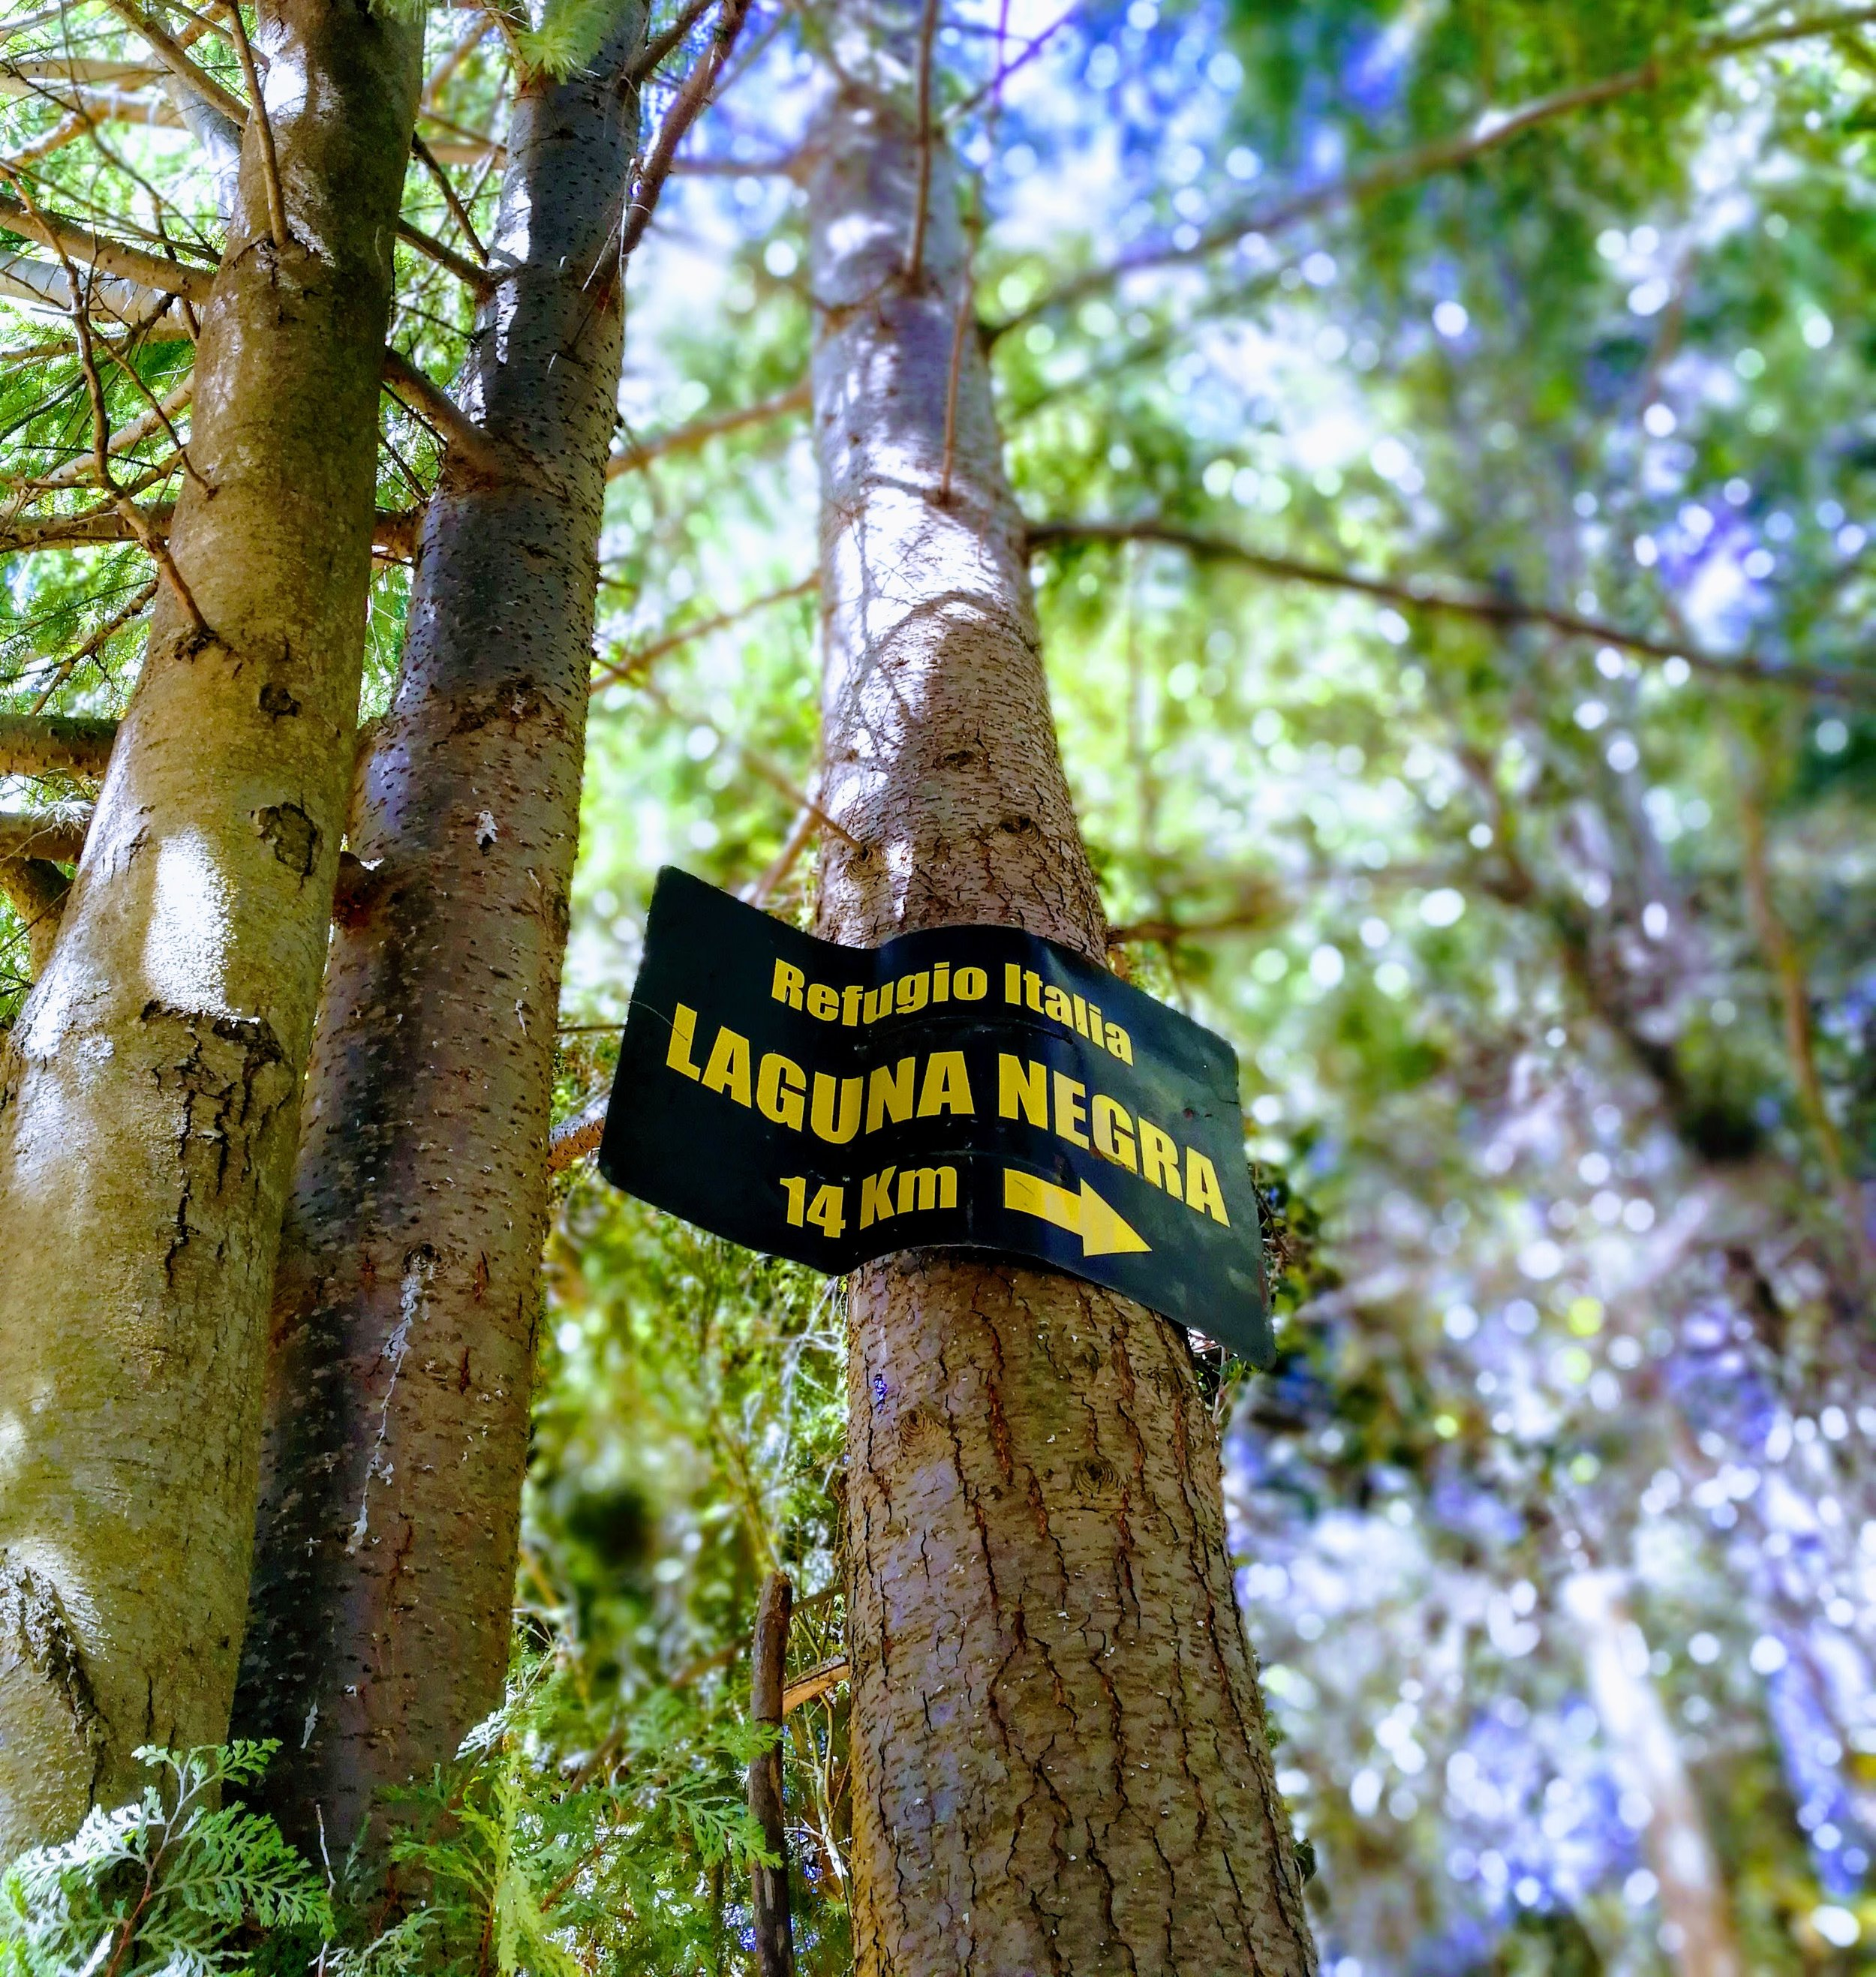 The trailhead to Laguna Negra is 100 meters beyond the bridge over Arroyo Goye. The sign is easy to miss, so keep your eyes peeled!